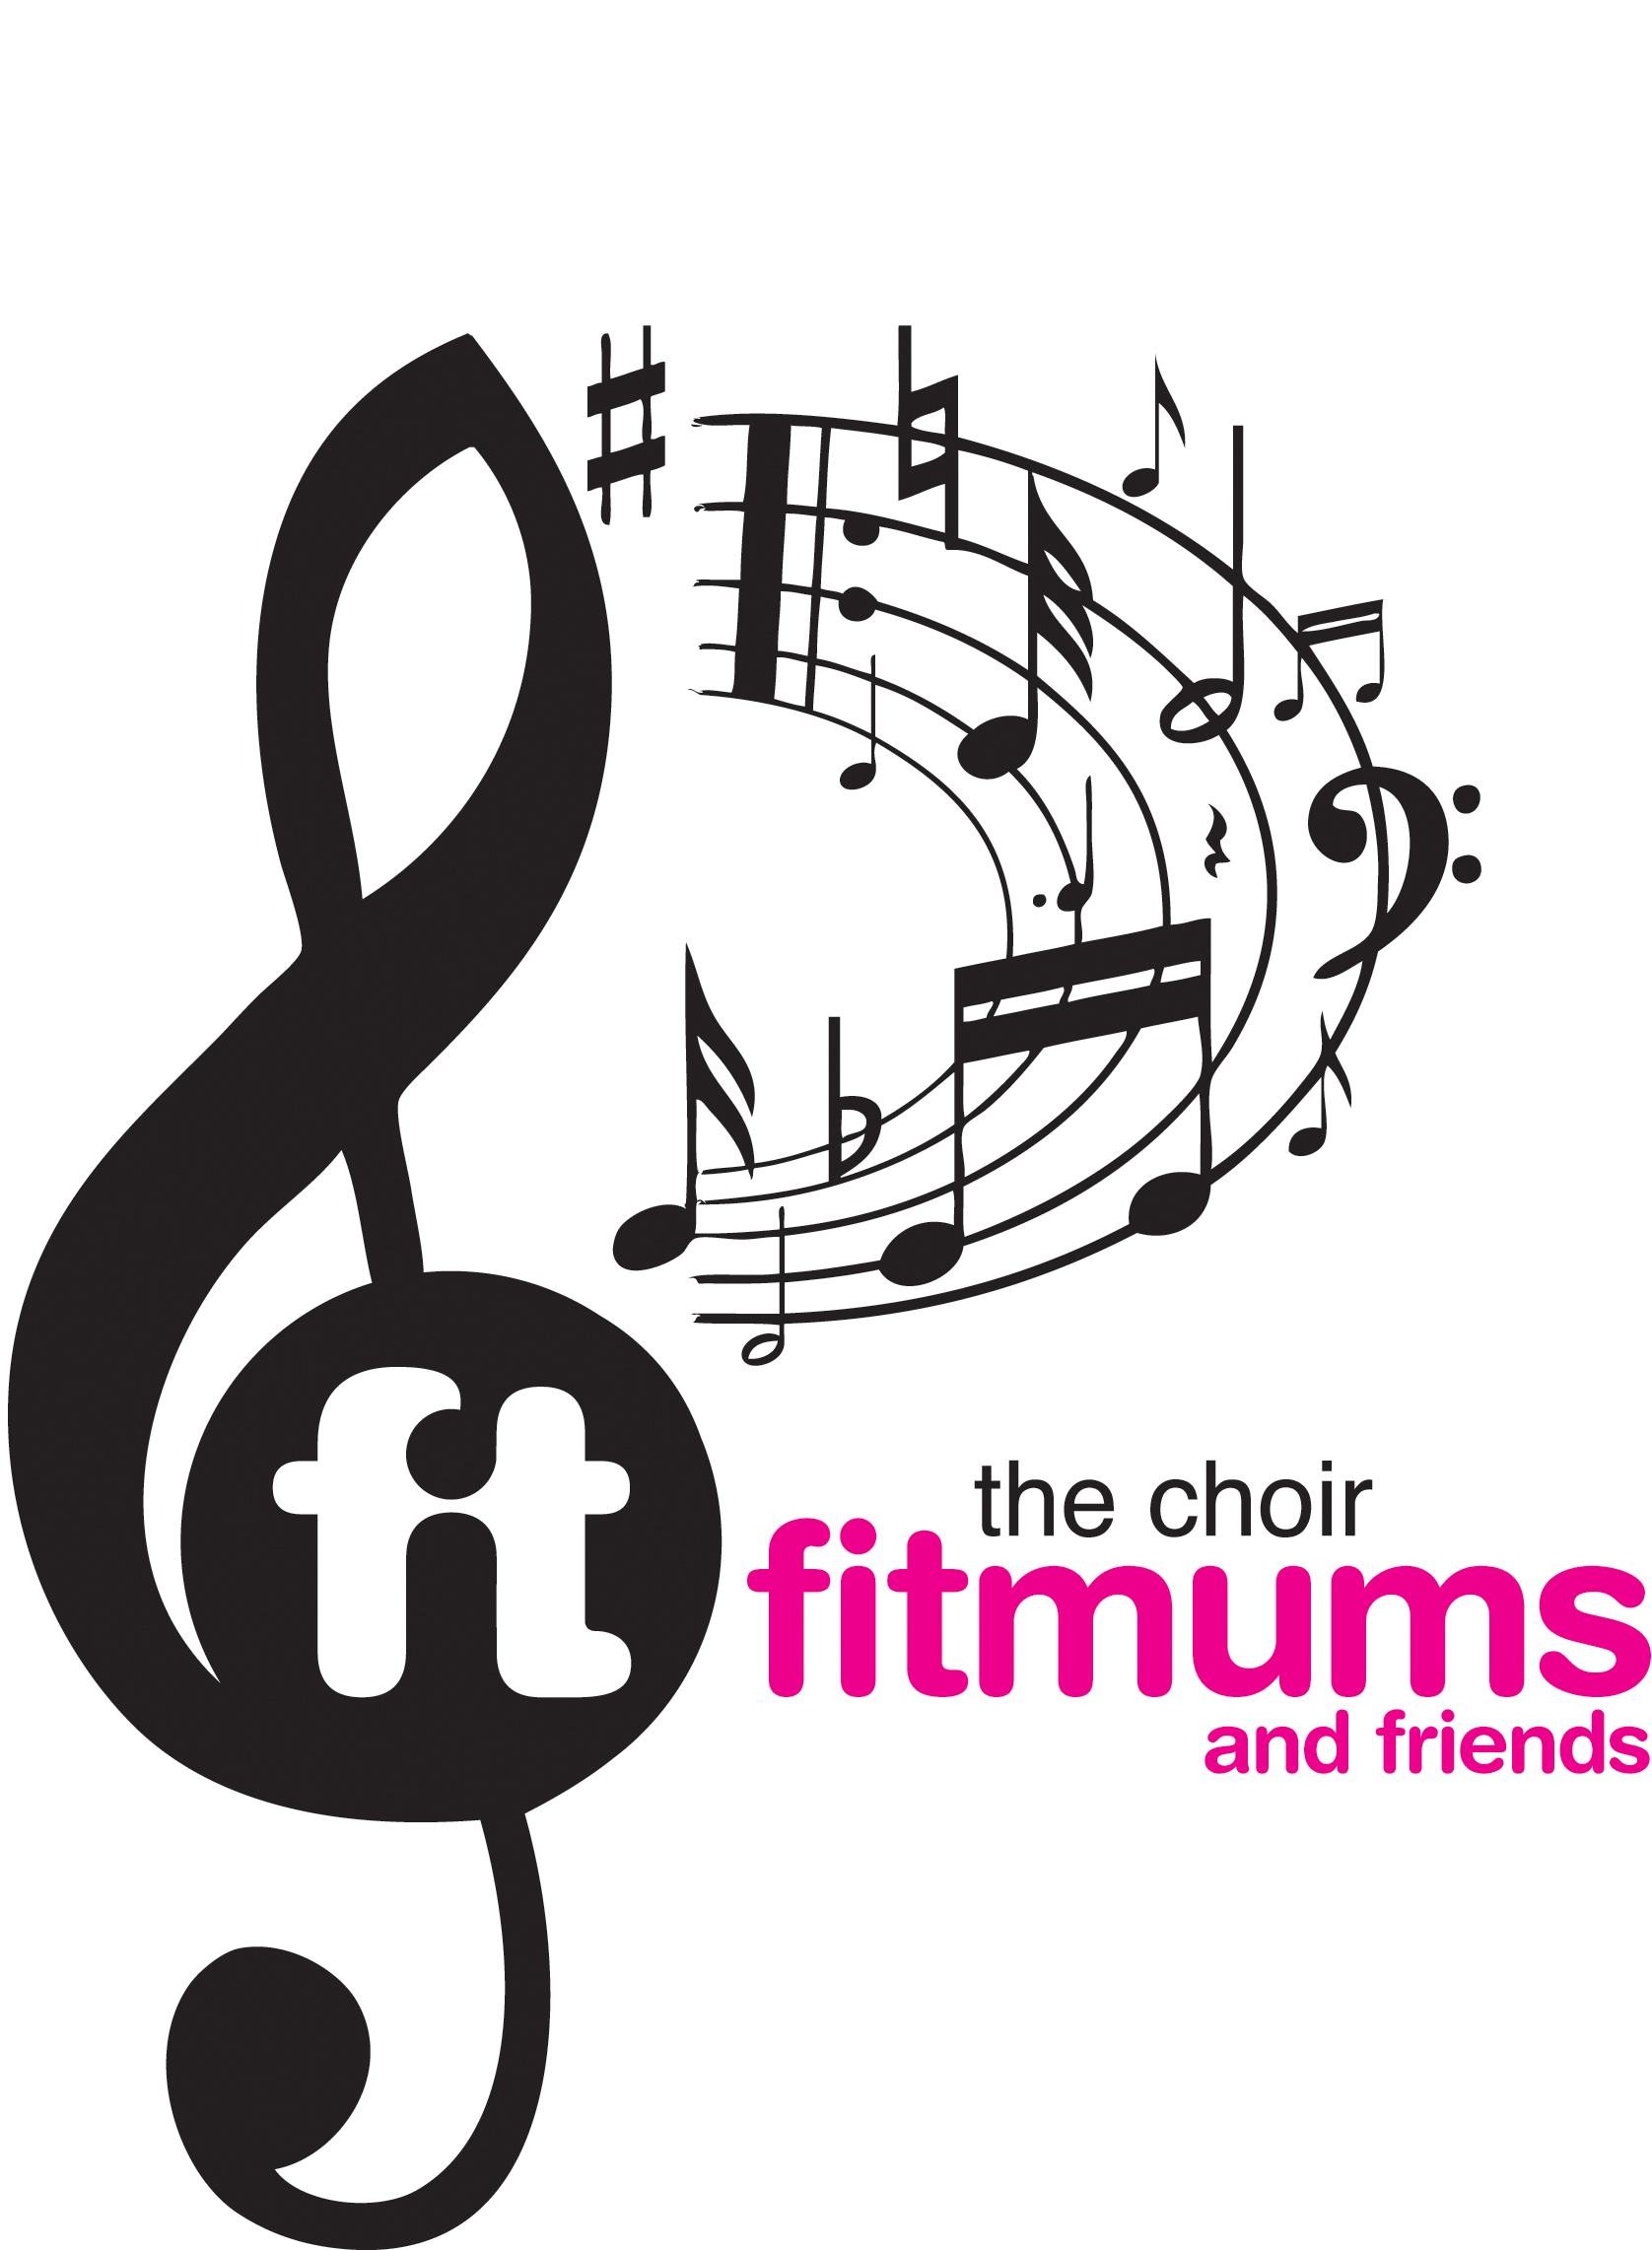 Free Choir Logo, Download Free Clip Art, Free Clip Art on.